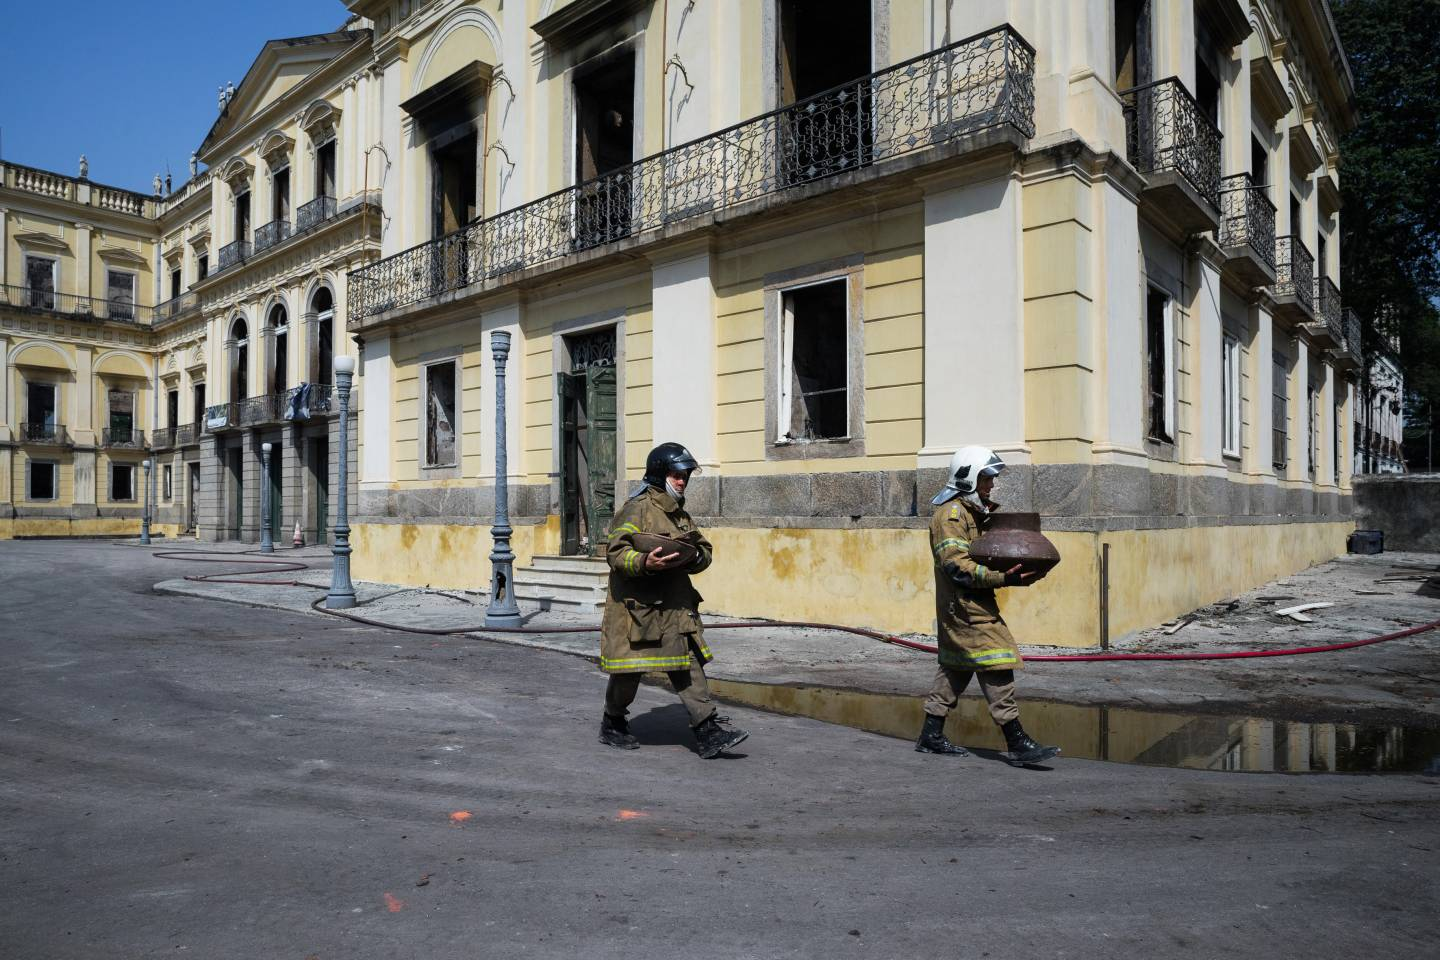 Firefighters carry out artifacts  Firefighters salvage artifacts lost in the fire that destroyed Brazil's National Museum.